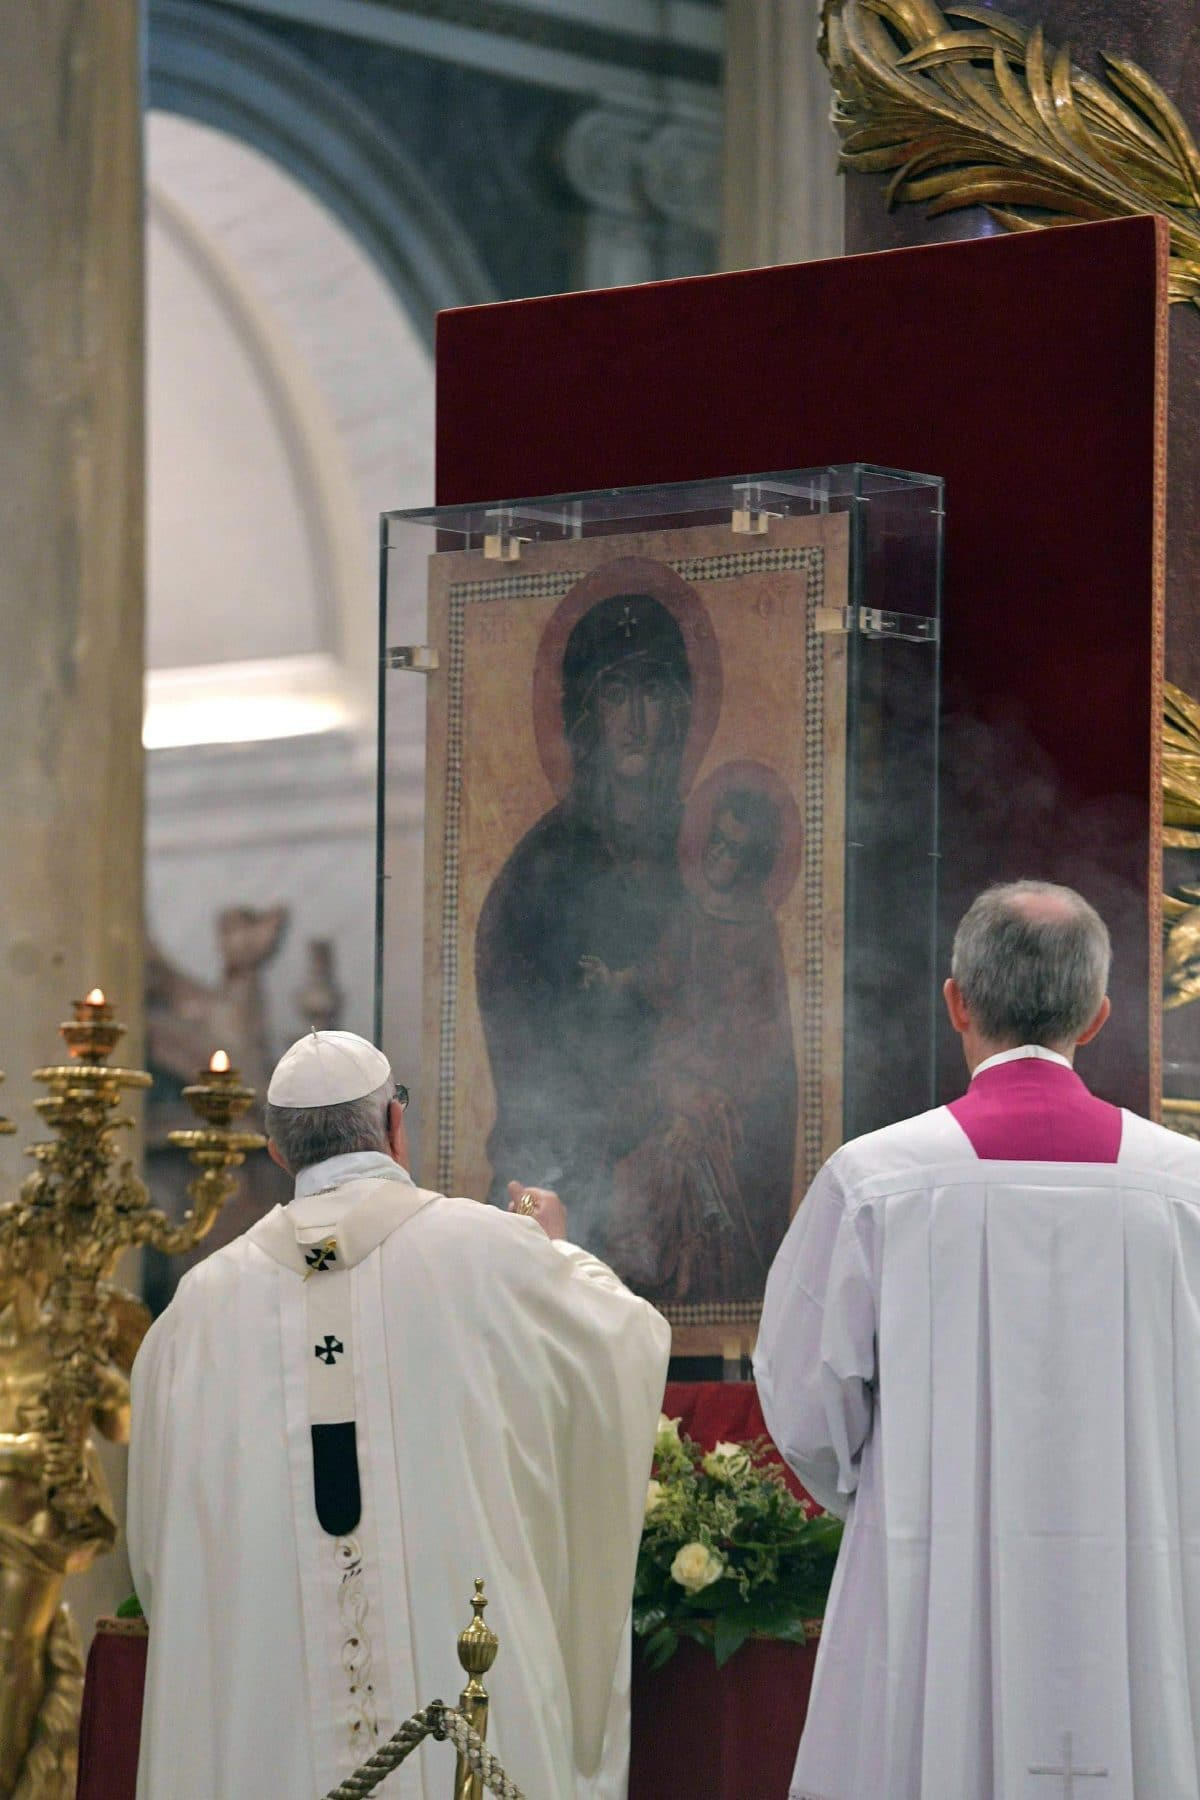 Pope Francis at a mass celebrating Centenary of the Congregation for Oriental Churches